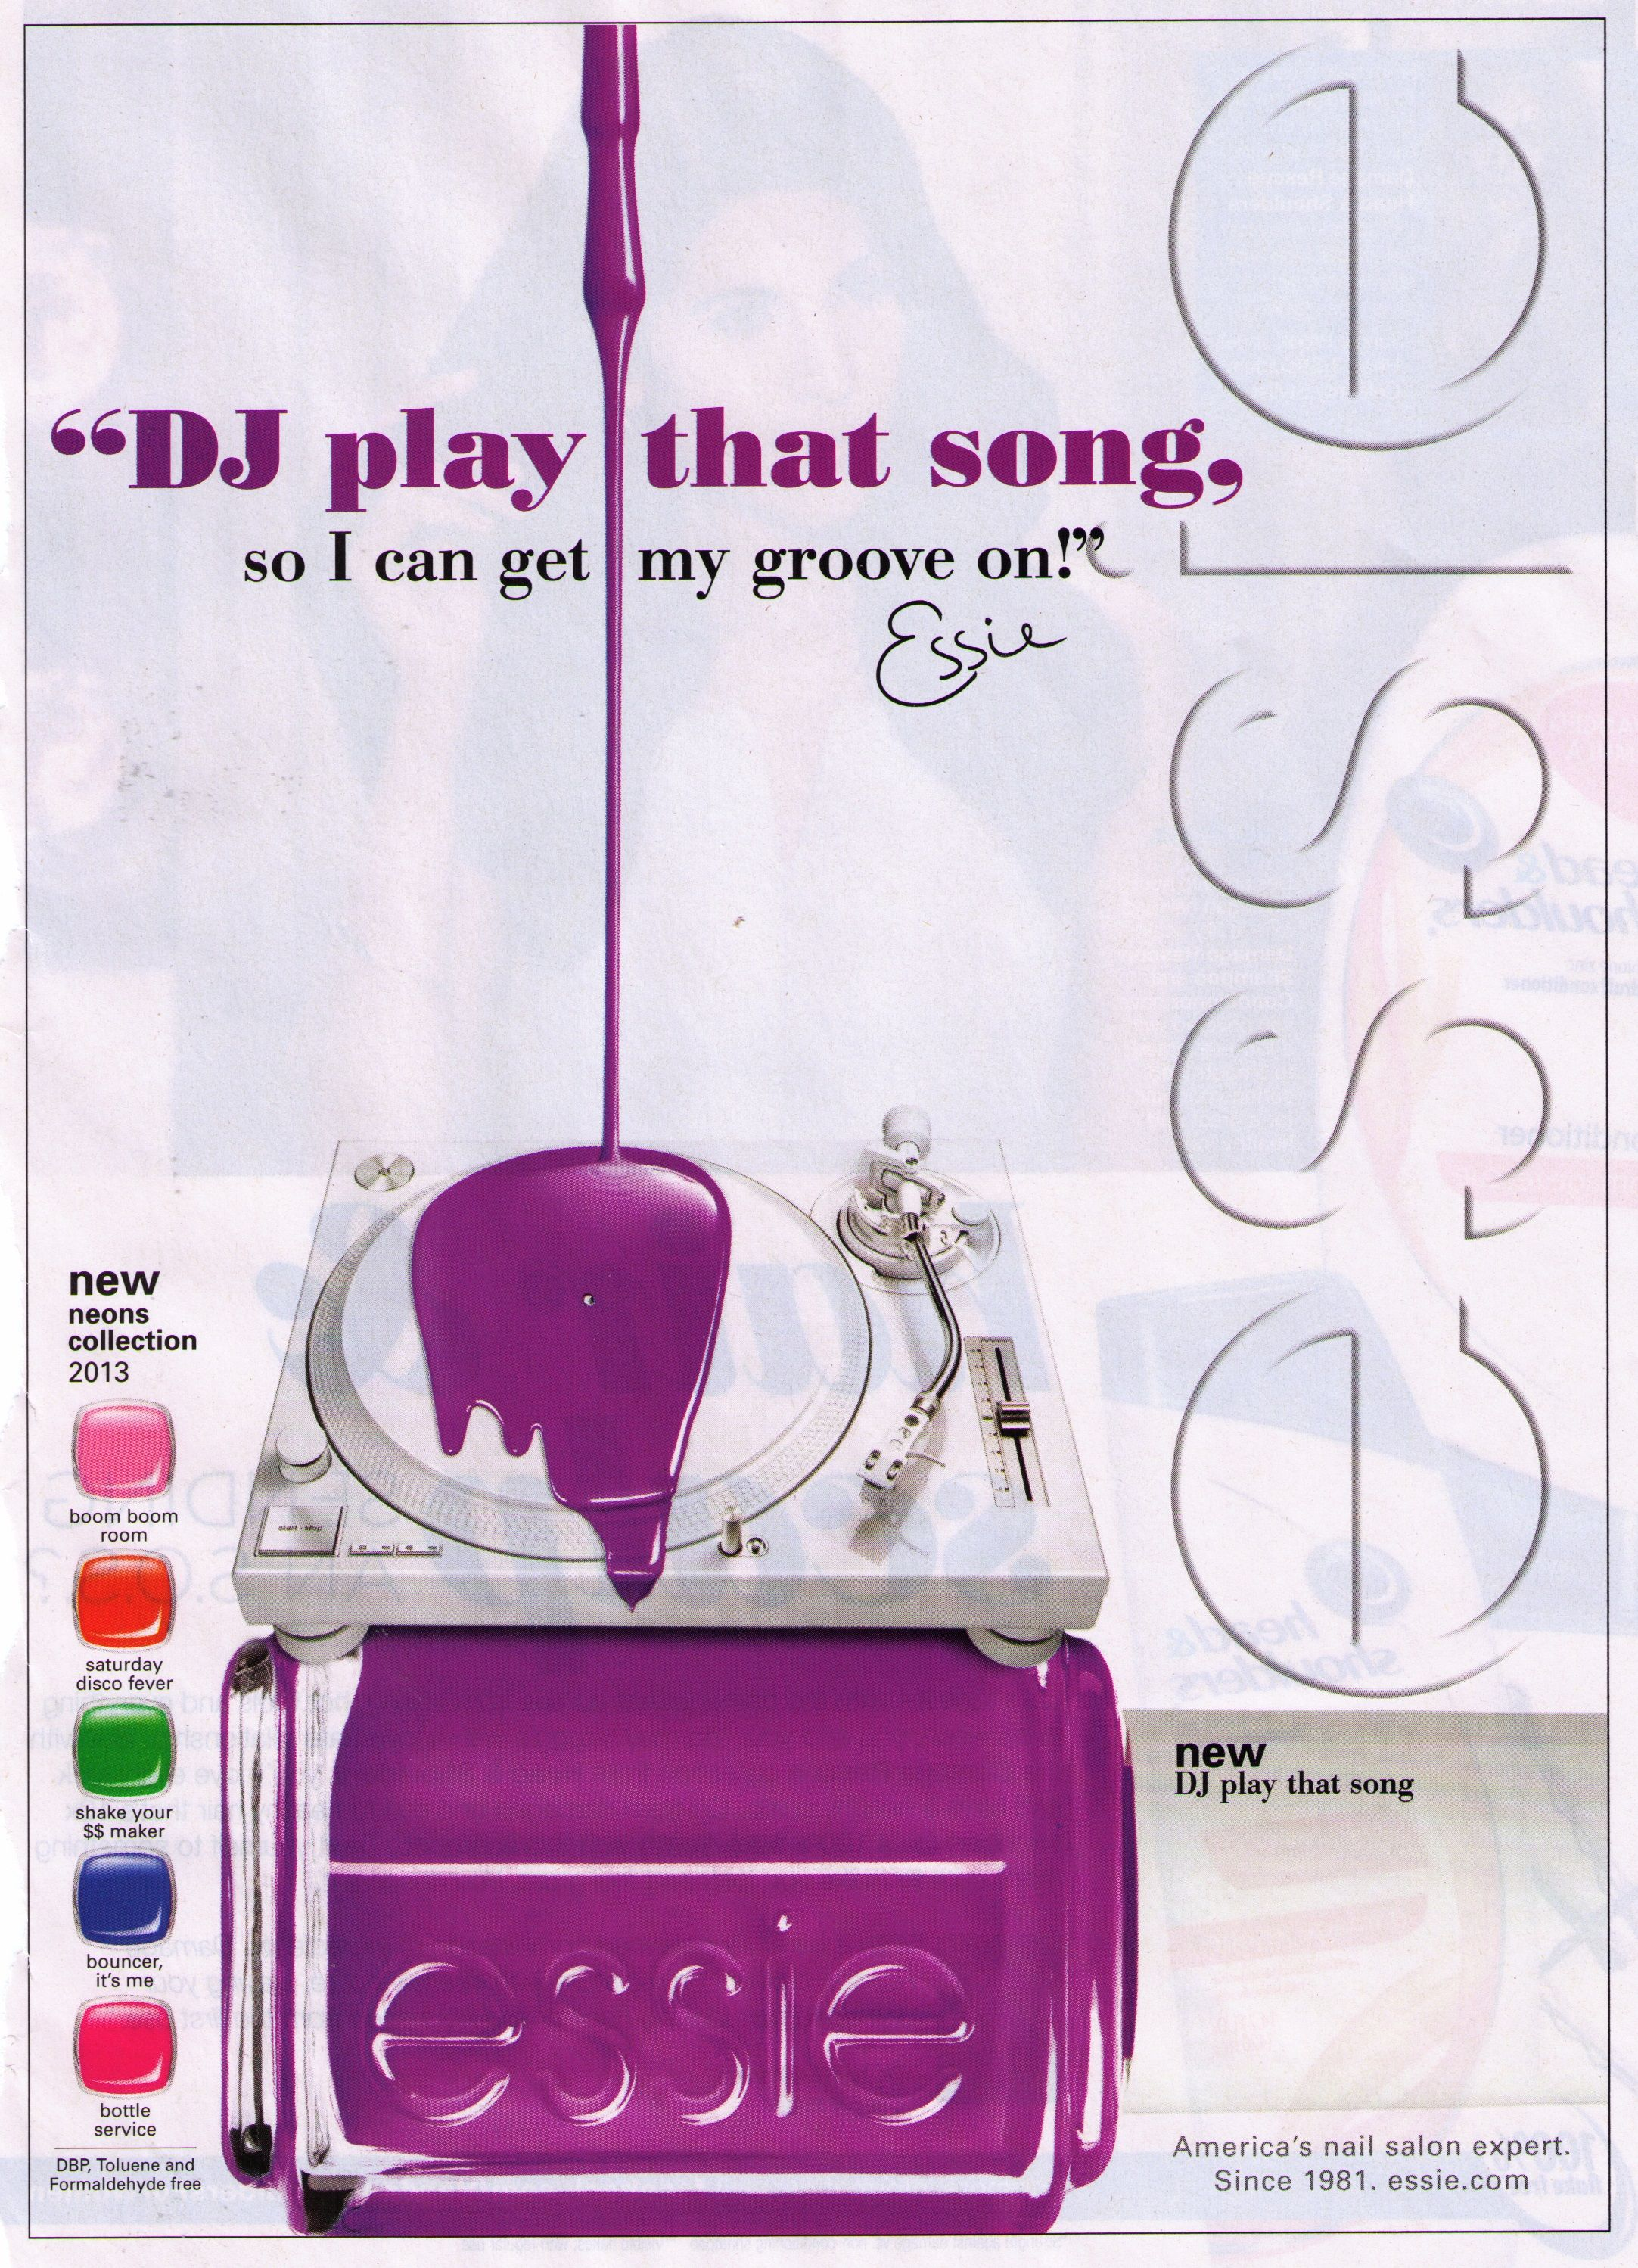 Essie Nail Polish Ad With Record Player